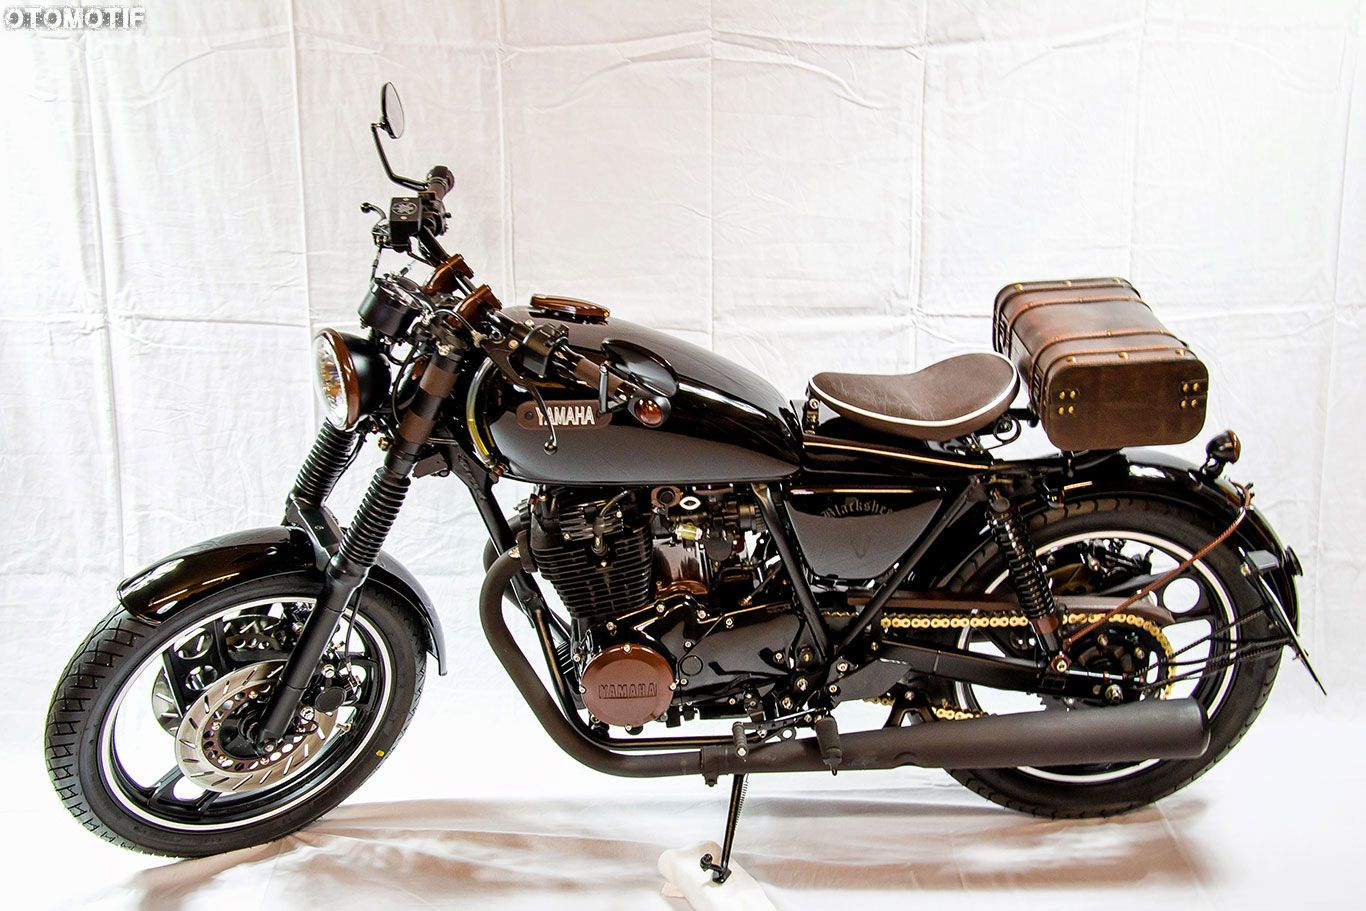 for the tank is from the yamaha xs 400 special. Black Bedroom Furniture Sets. Home Design Ideas